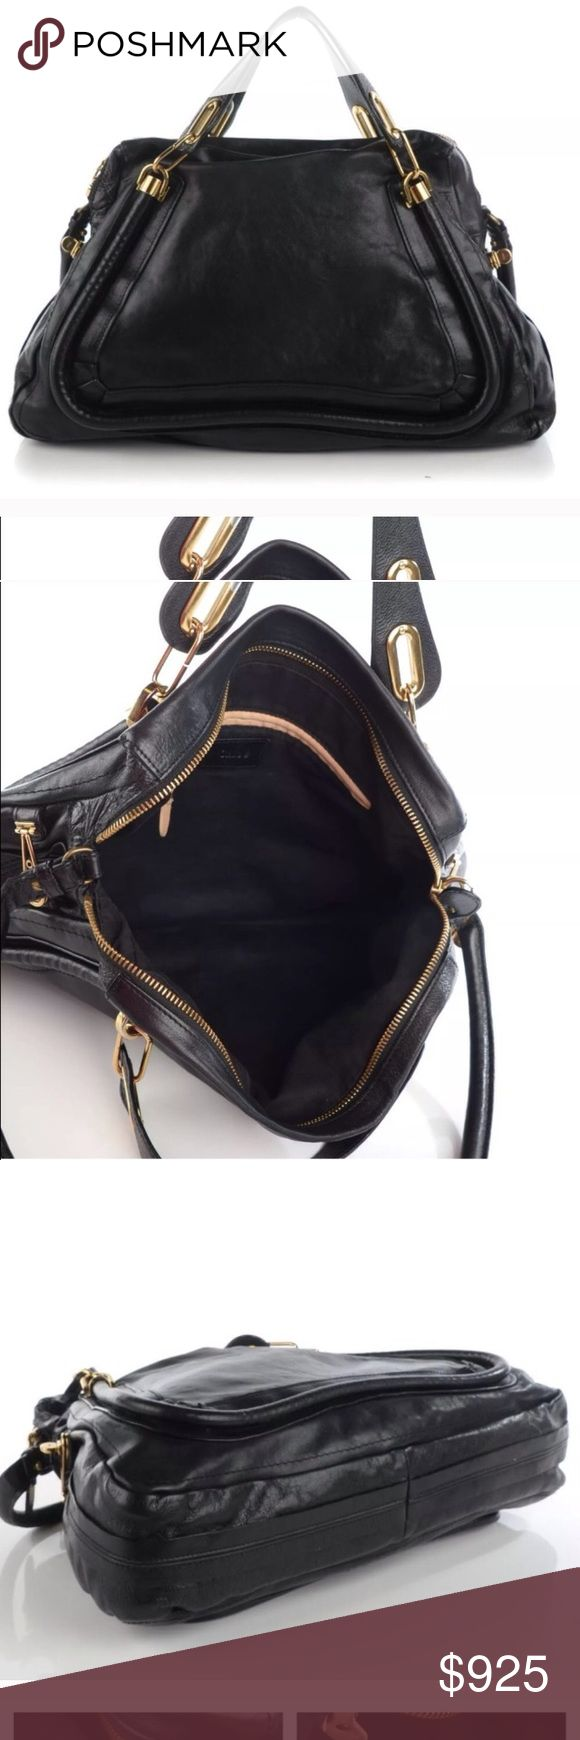 Chloe paraty bag This bag is in excellent condition and 100 percent authentic it will go through posh conceirge first so you don't have to worry about authenticity . This bag had no flaws inside or out. Leather Odin excellent condition and professionally polished recently. No low balls . No dust bags or cards. Price reflects Chloe Bags Crossbody Bags